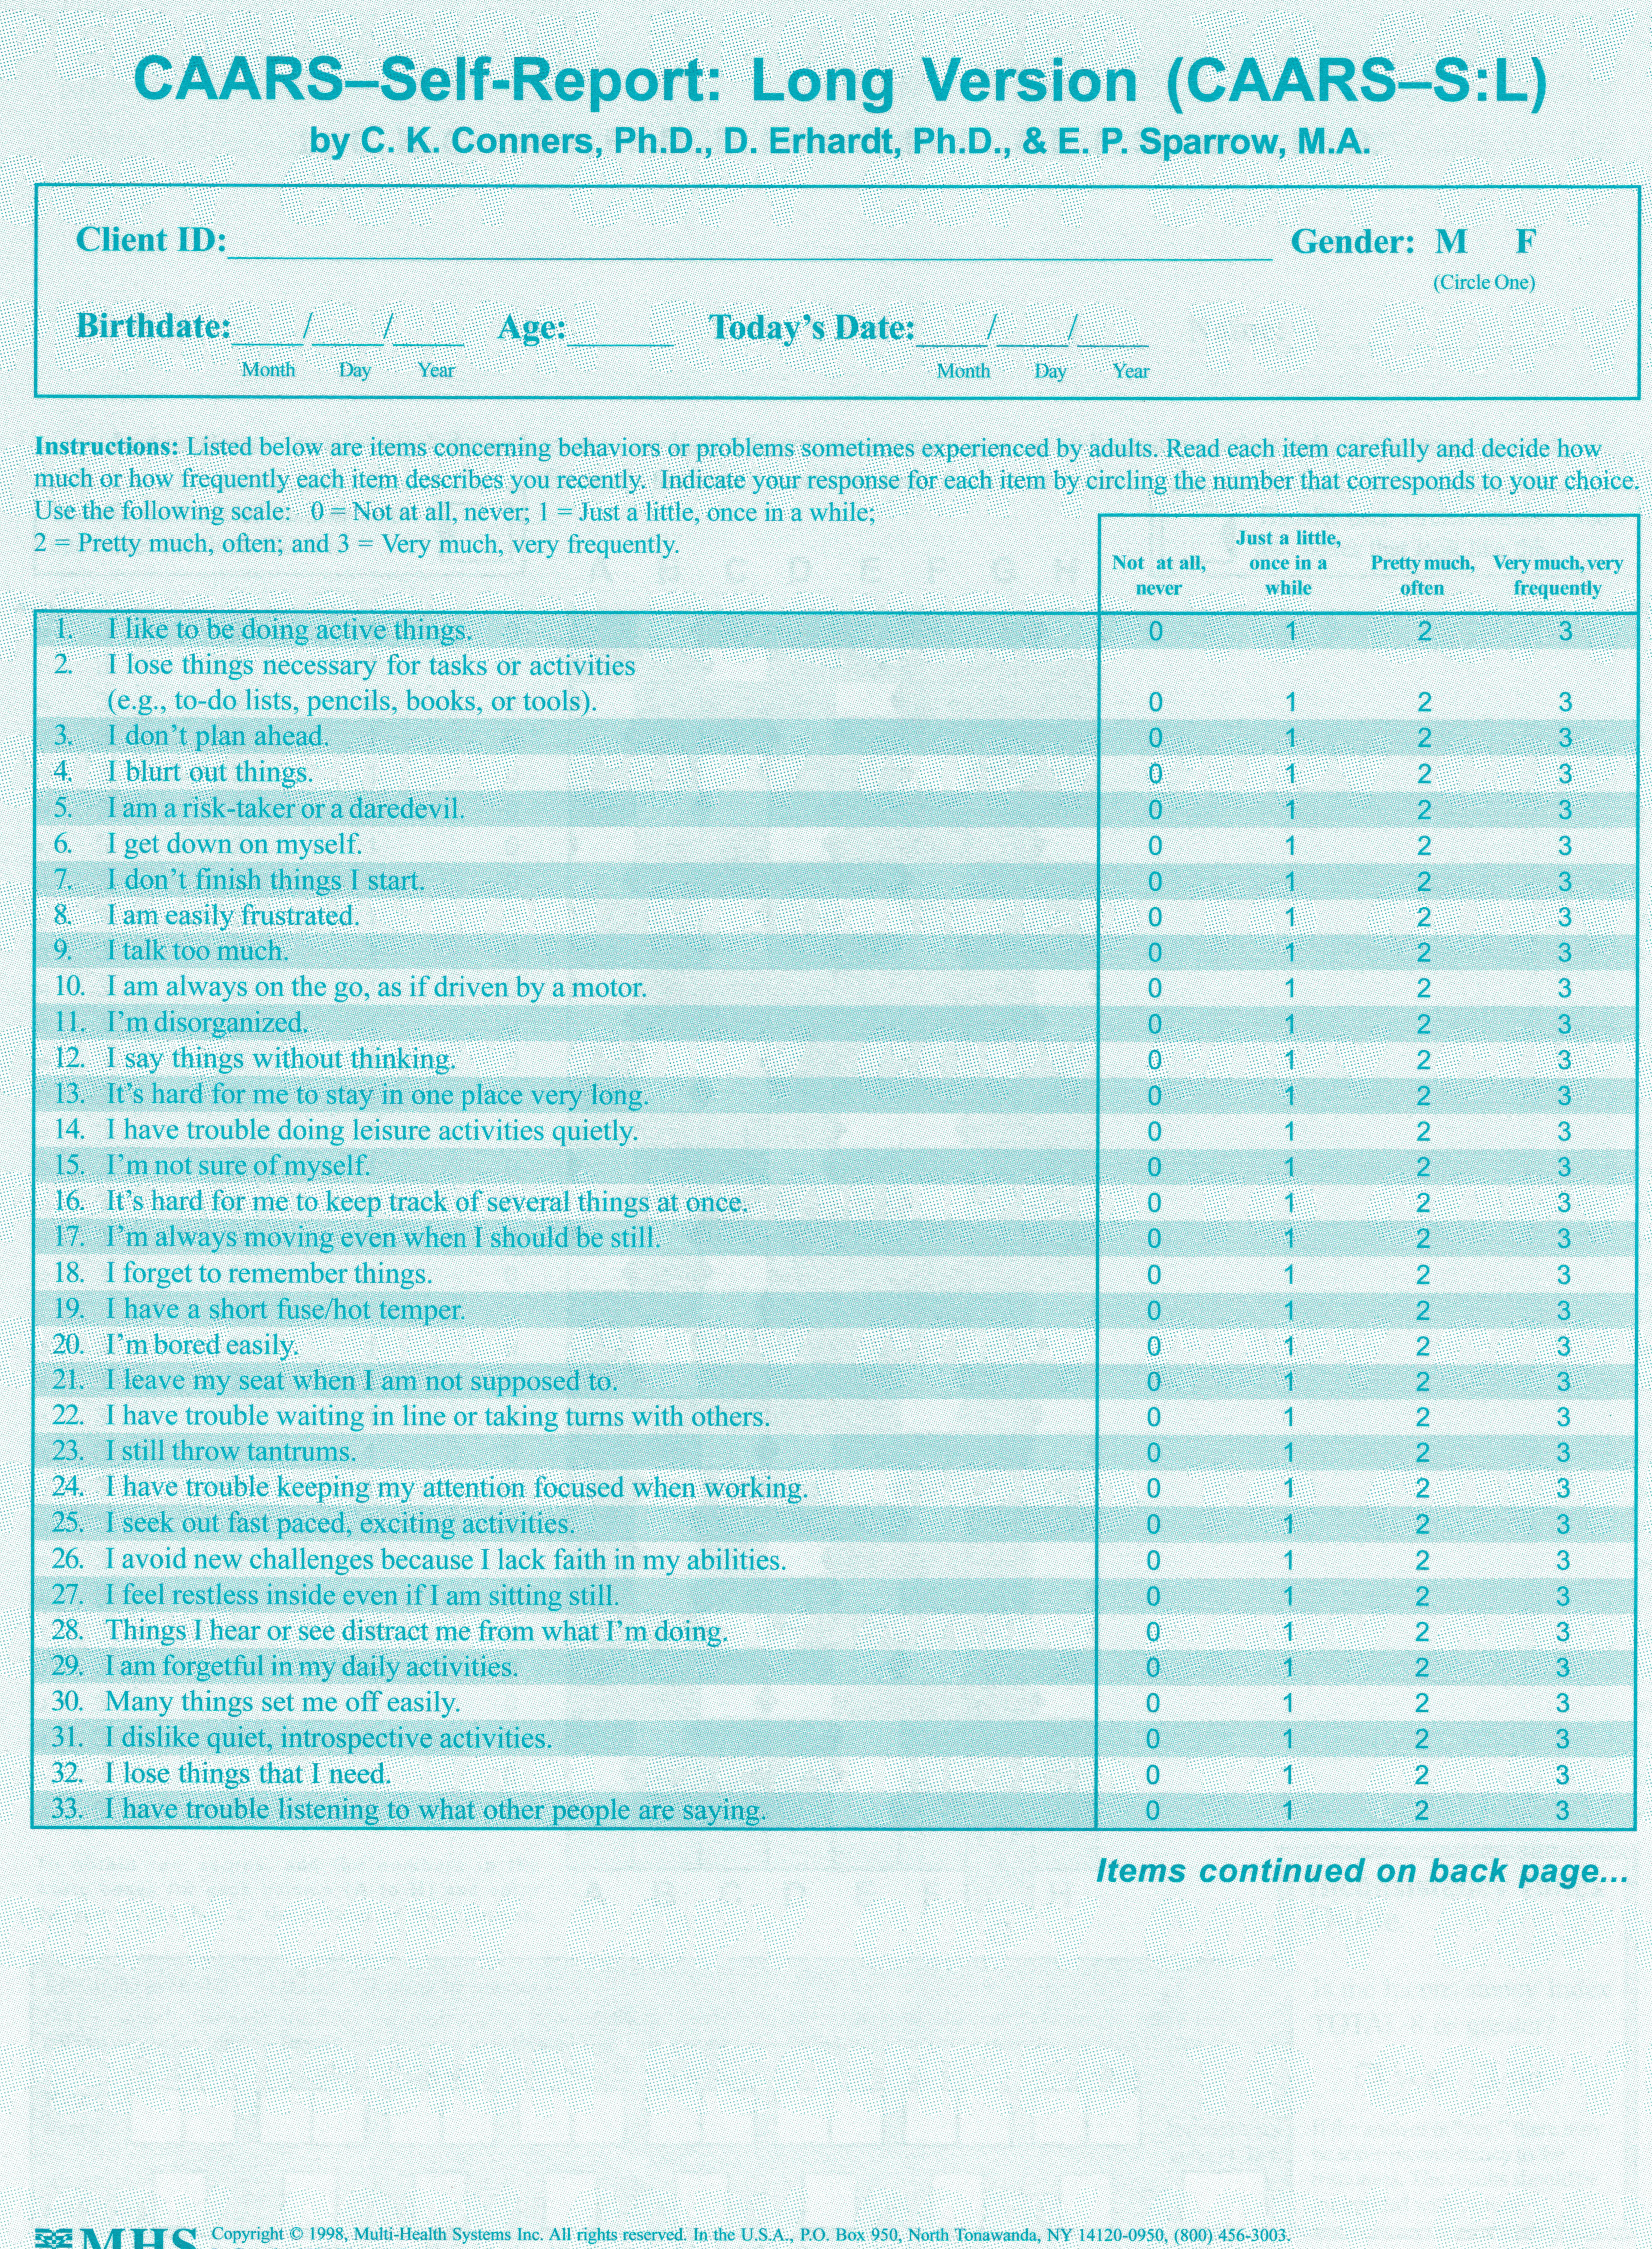 Conners CAARS Adult ADHD Rating Scales - CAARS-S-L Quikscore Forms